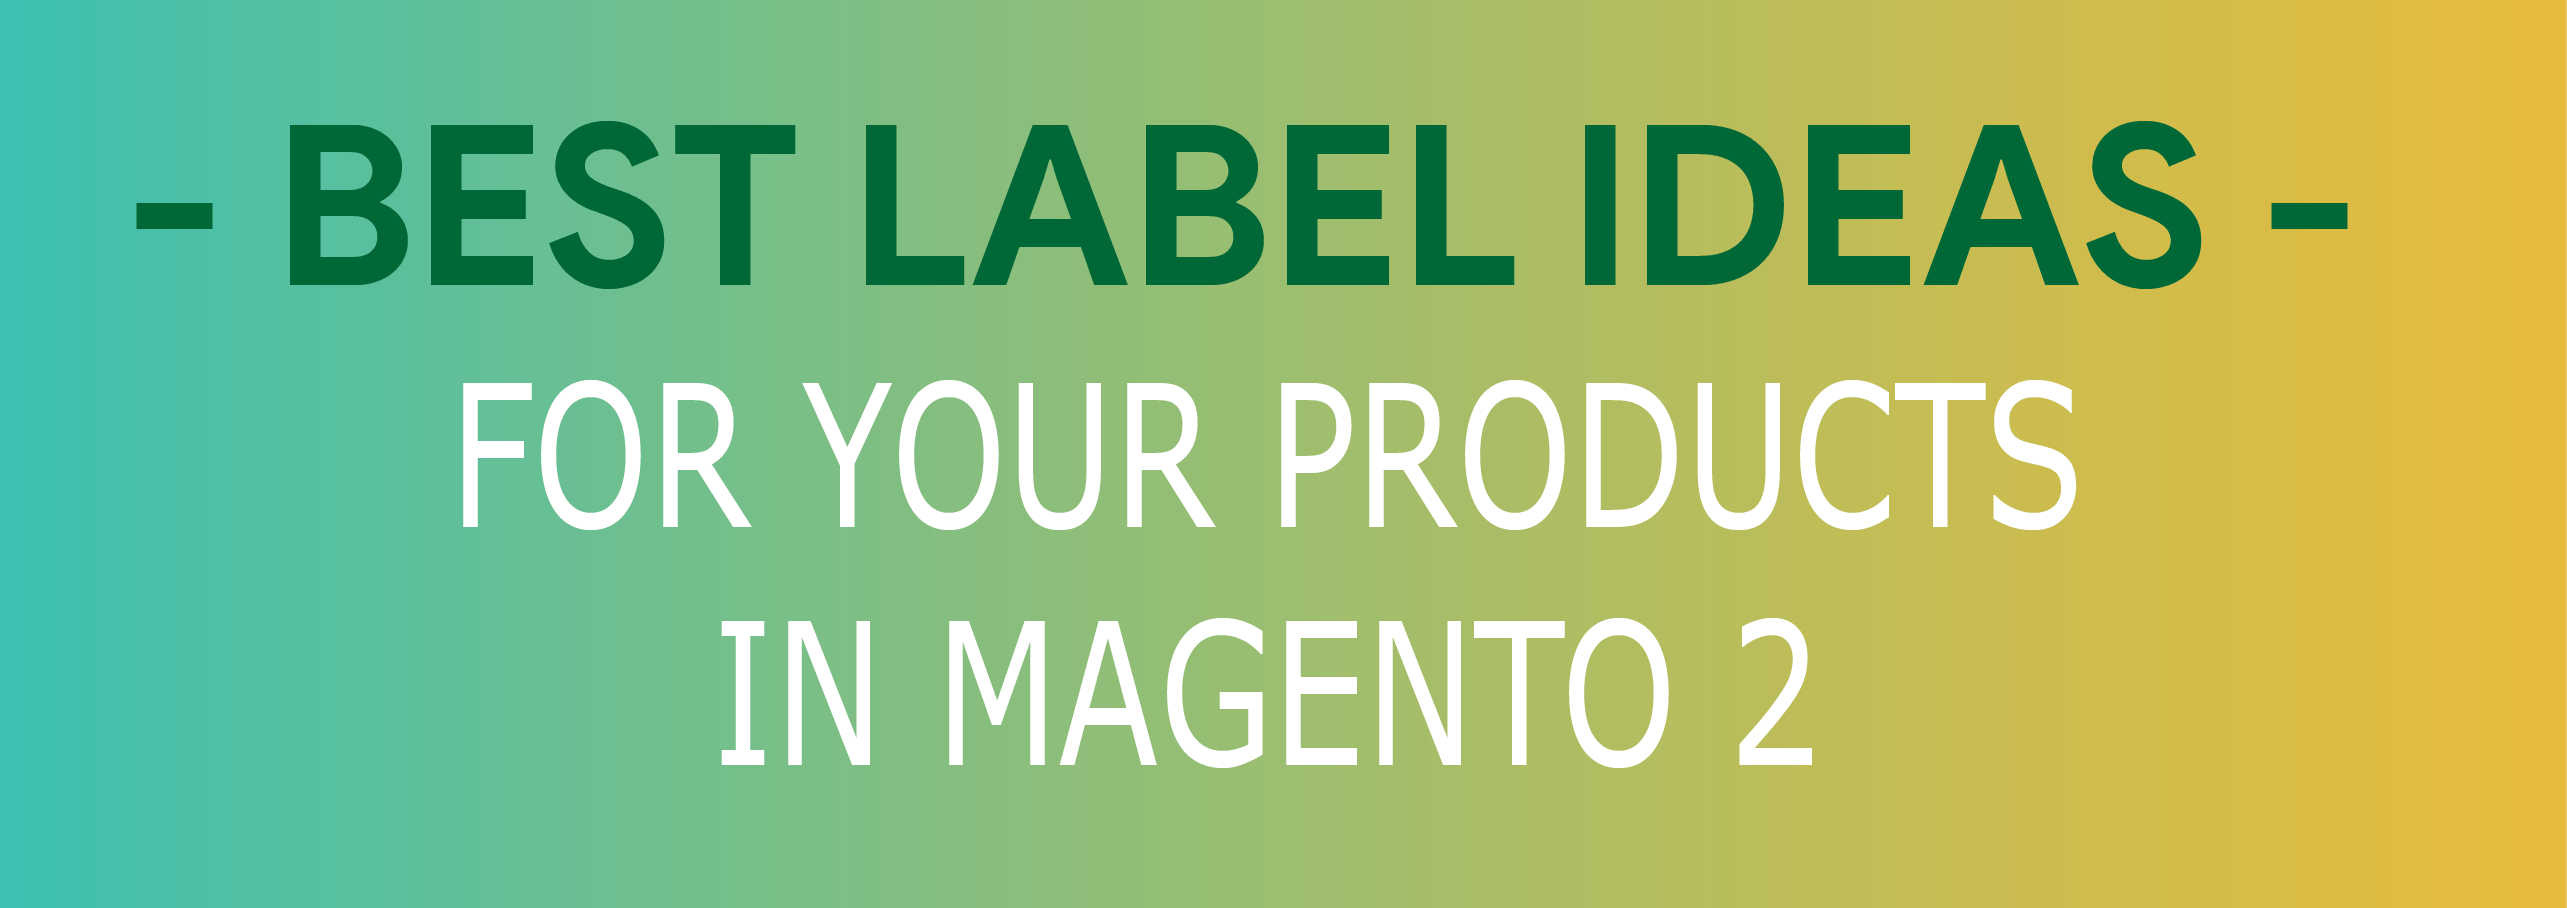 Best Label Ideas for Your Products in Magento 2